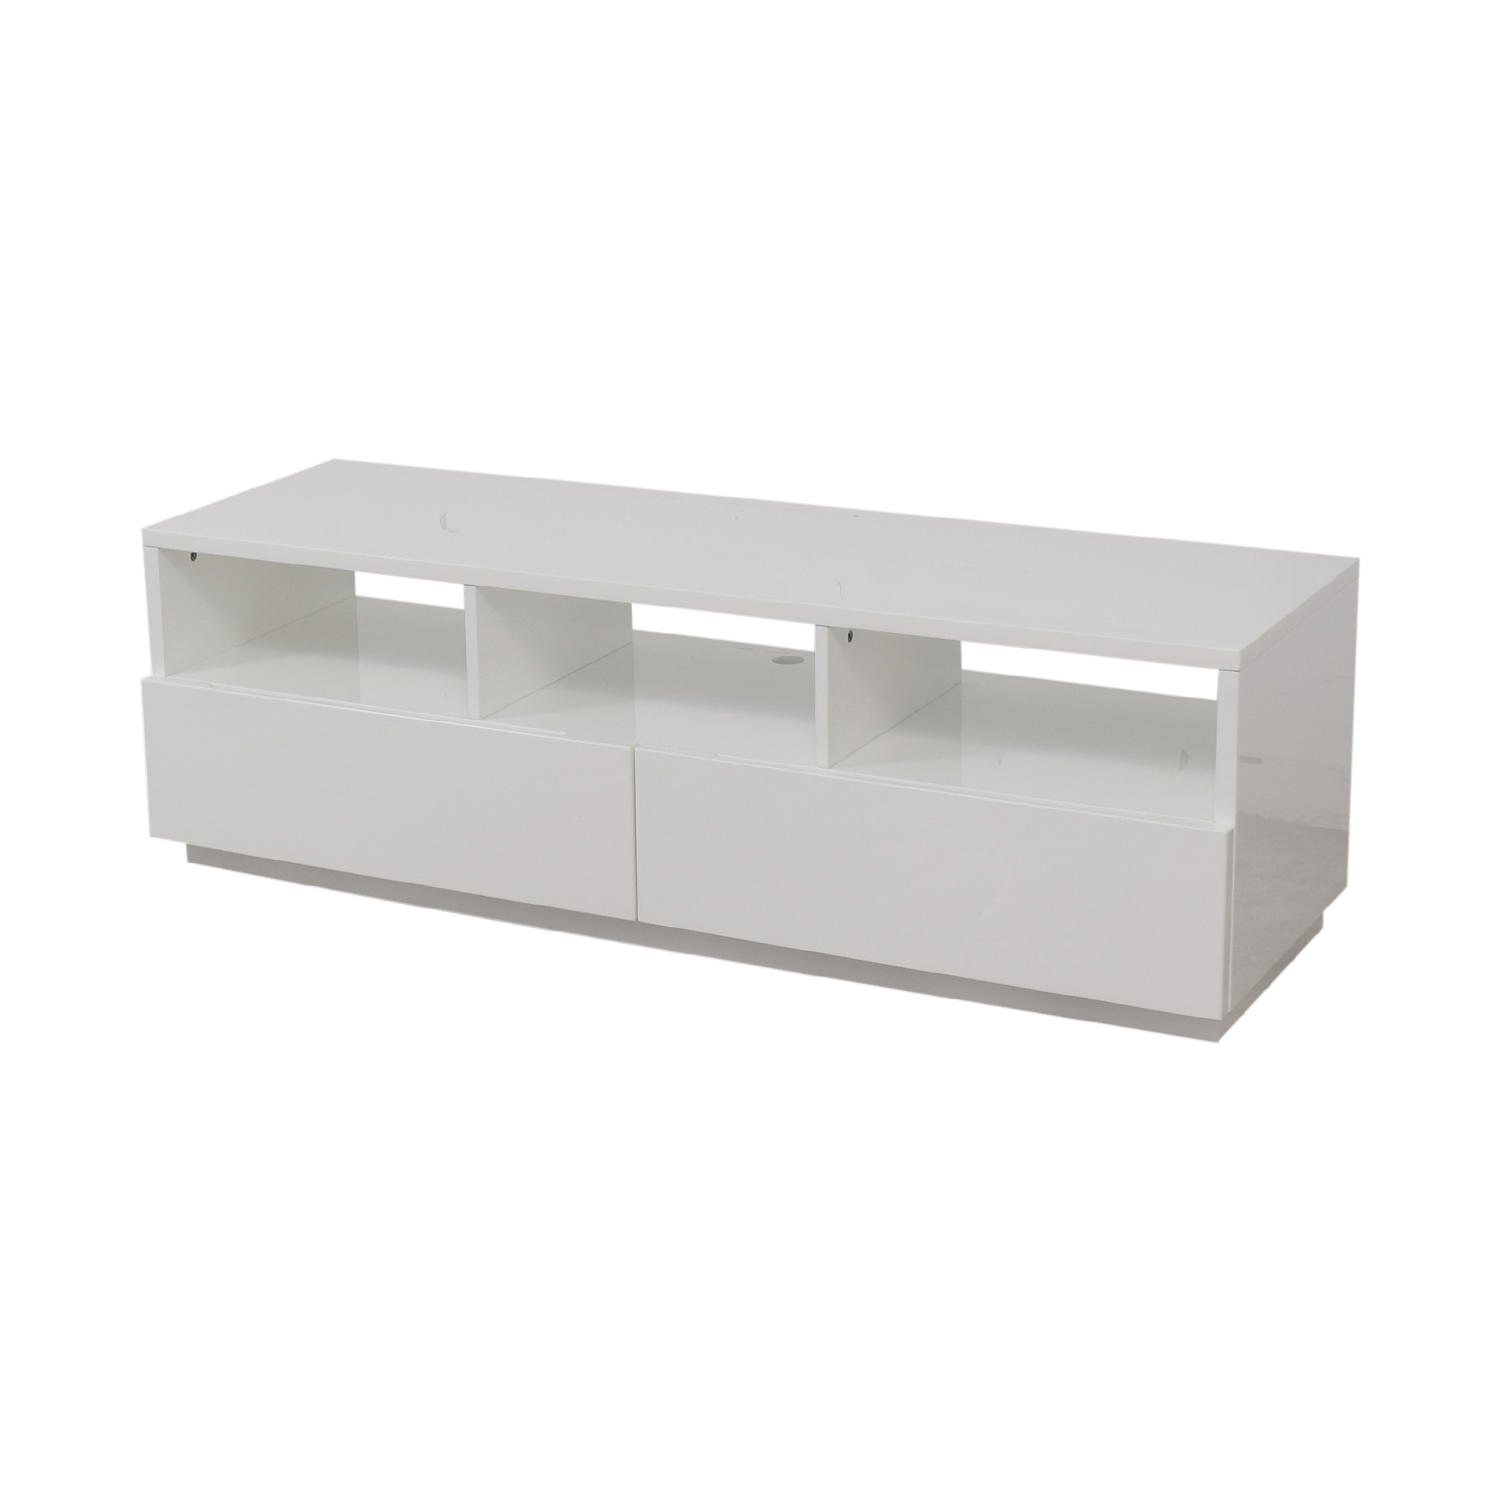 CB2 CB2 Chill White Two-Drawer Media Console price